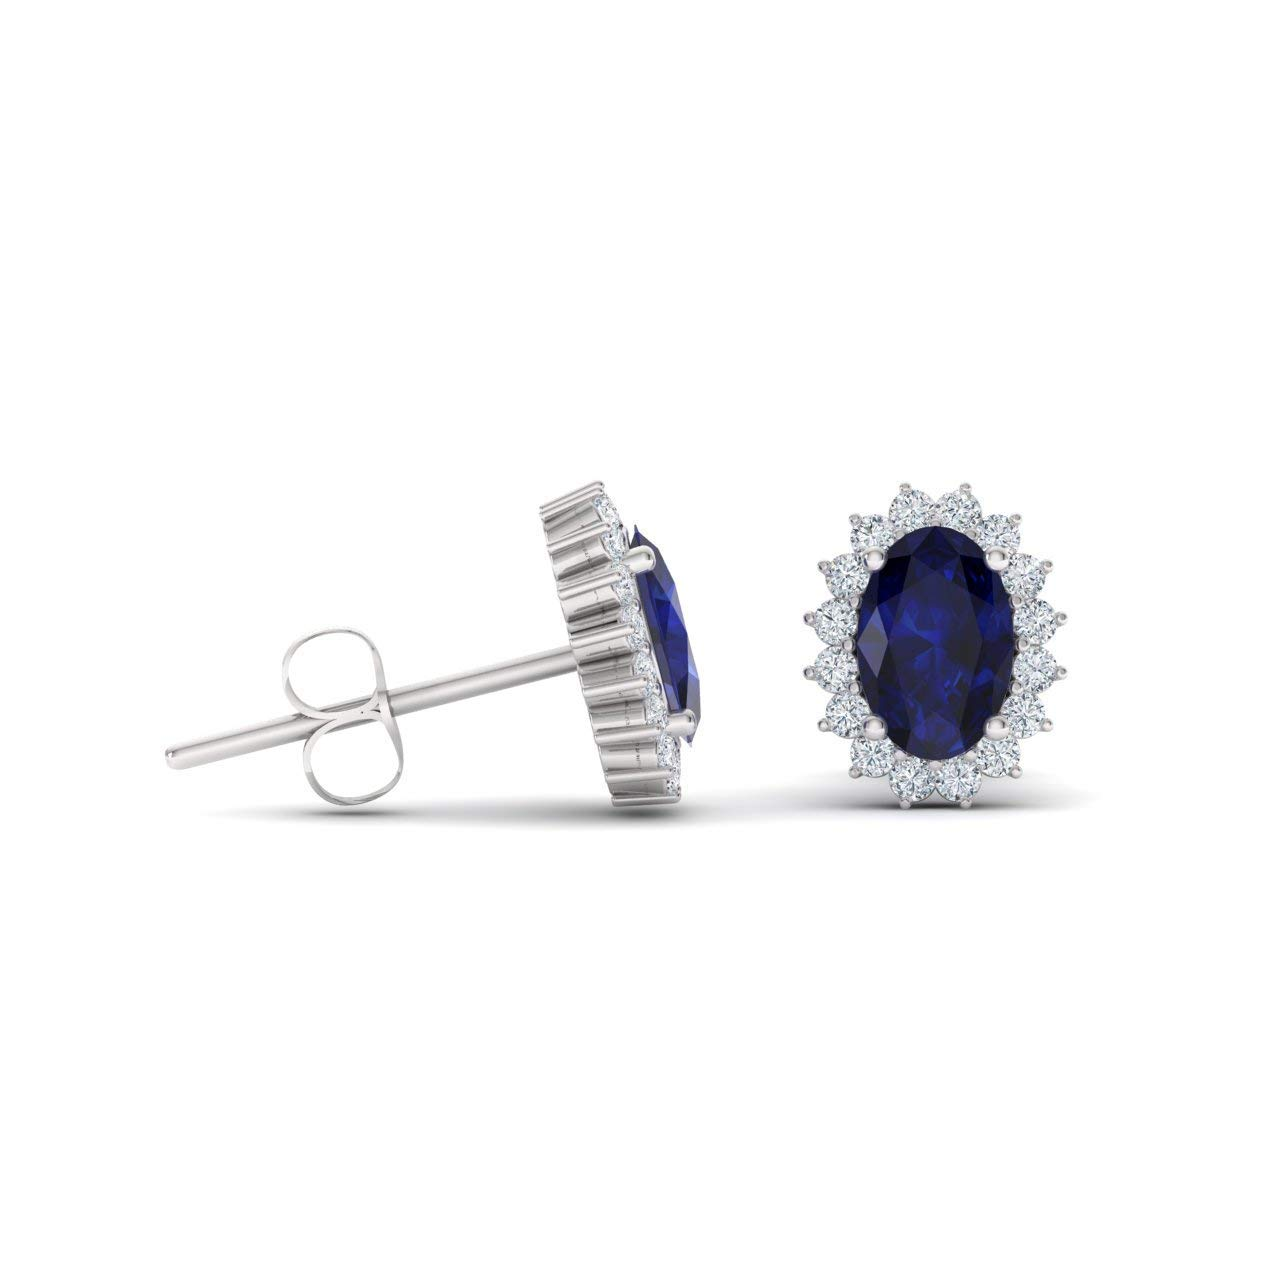 Perfect Grooms /& Groomsman Gifts. Delicate Blue Sapphire,Cz Gem Cufflink In 925 Sterling Silver Fine Jewelry For Men September Birth Stone